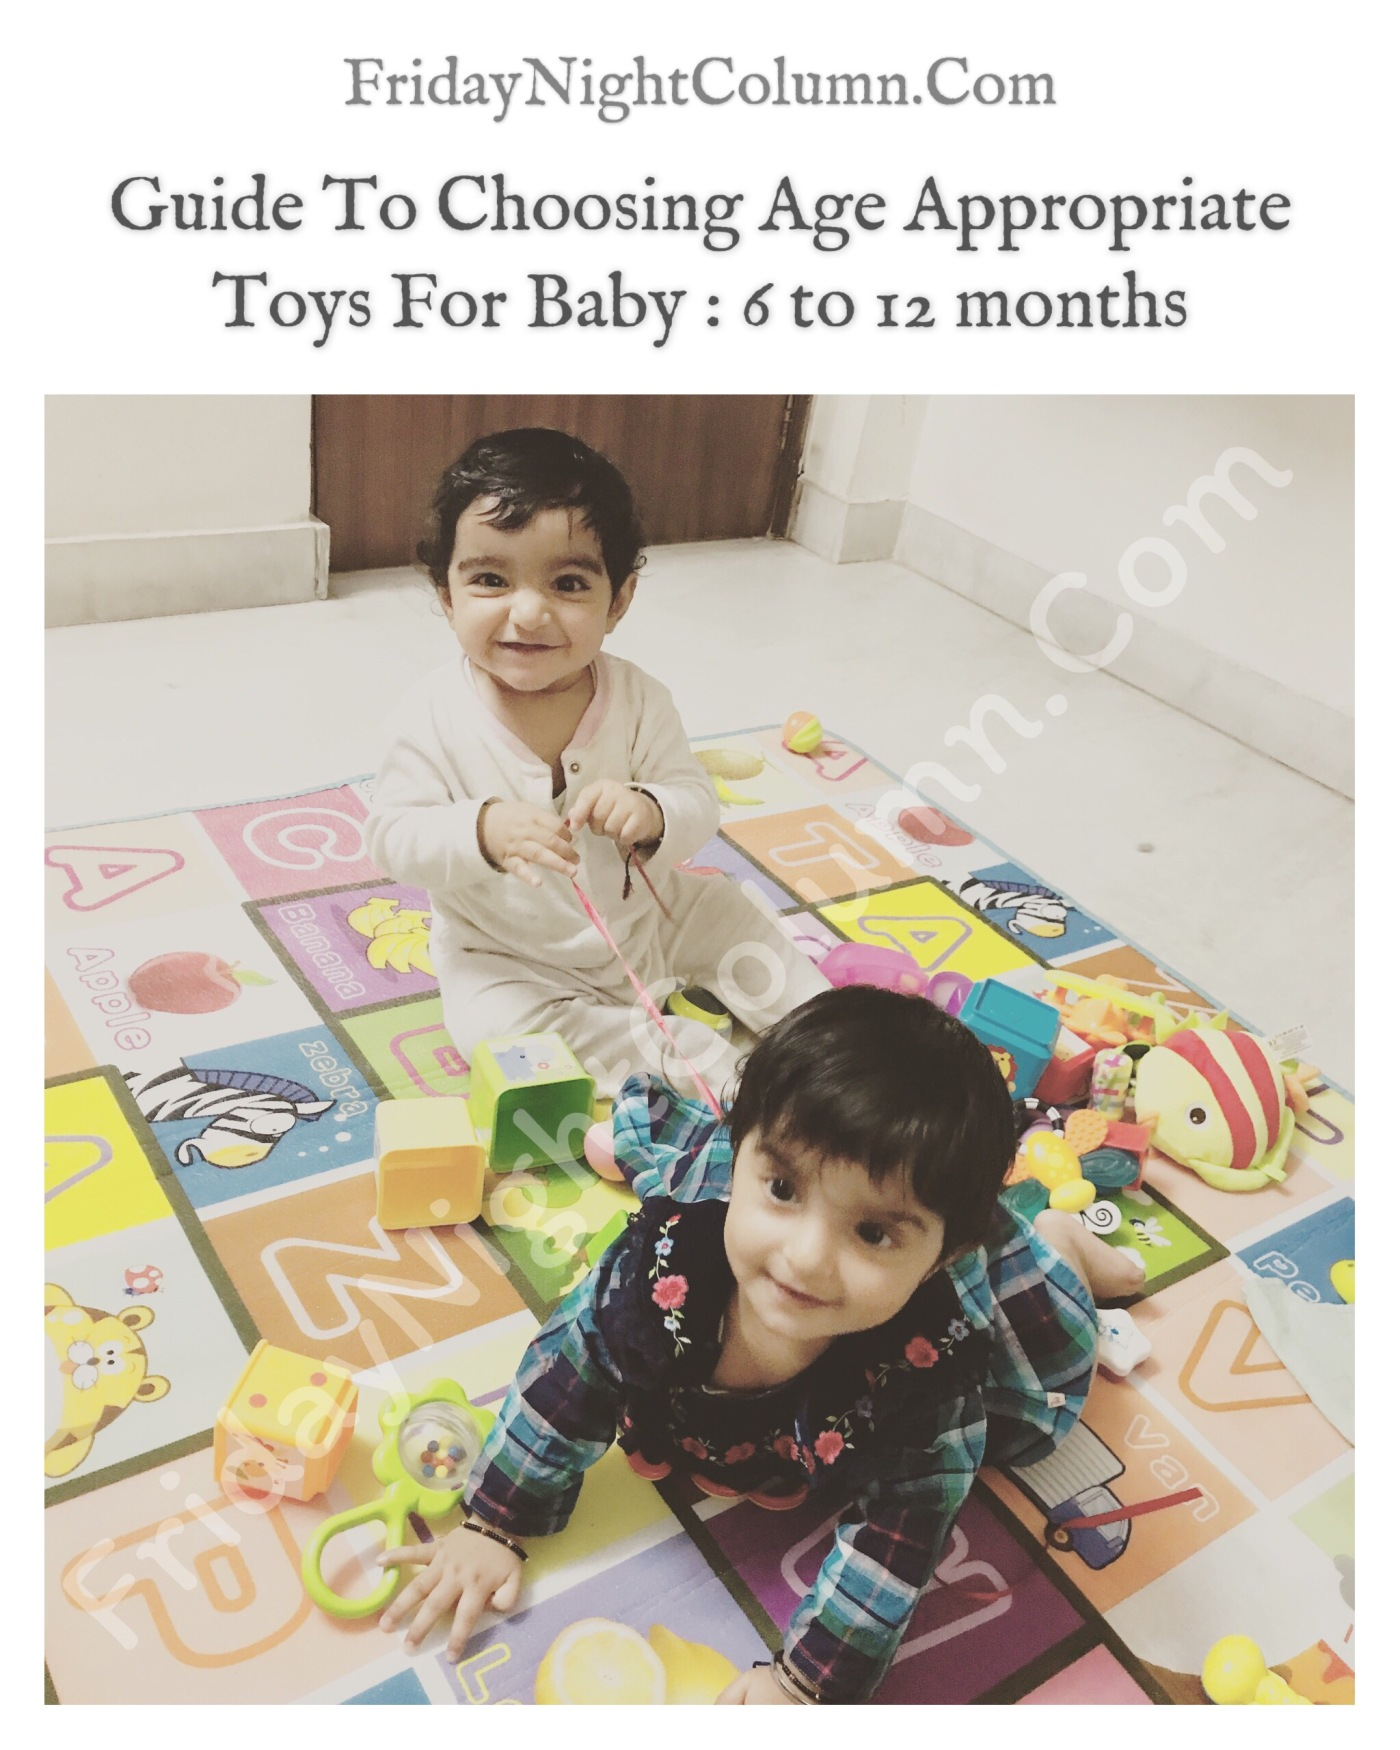 Choosing Toys For A Toddler : Guide to choosing age appropriate toys for baby